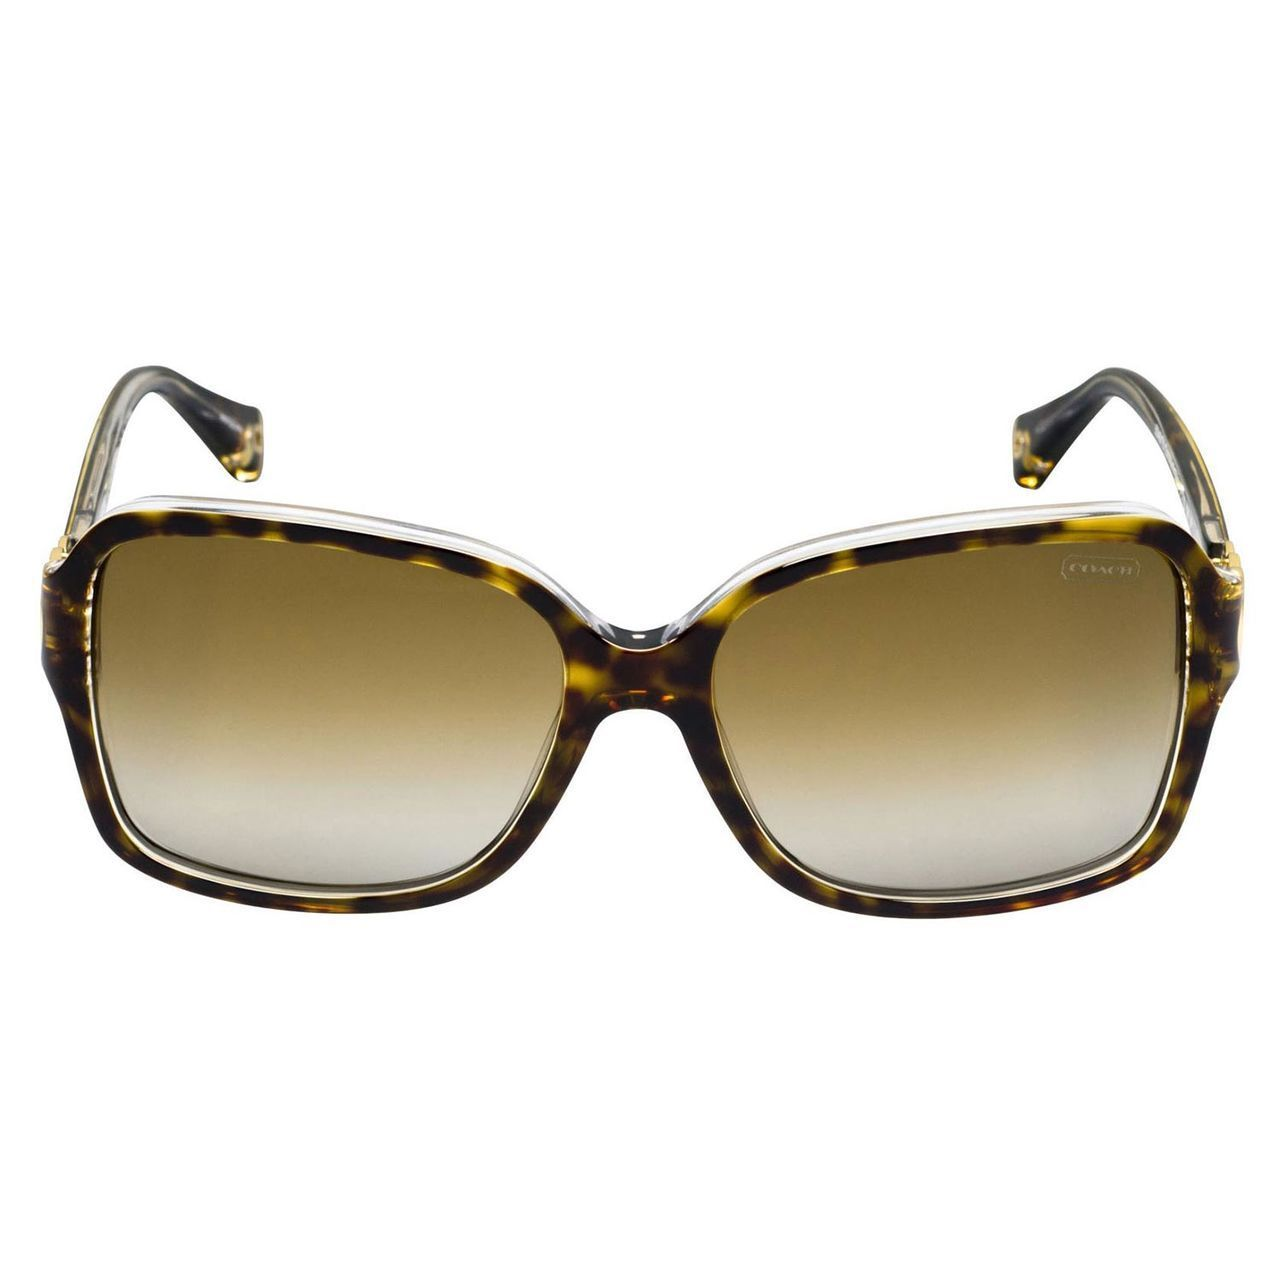 025947c8d0825 Shop Coach Women s HC8009 Frances 5049T5 Plastic Square Polarized Sunglasses  - Tortoise - Free Shipping Today - Overstock - 10324915